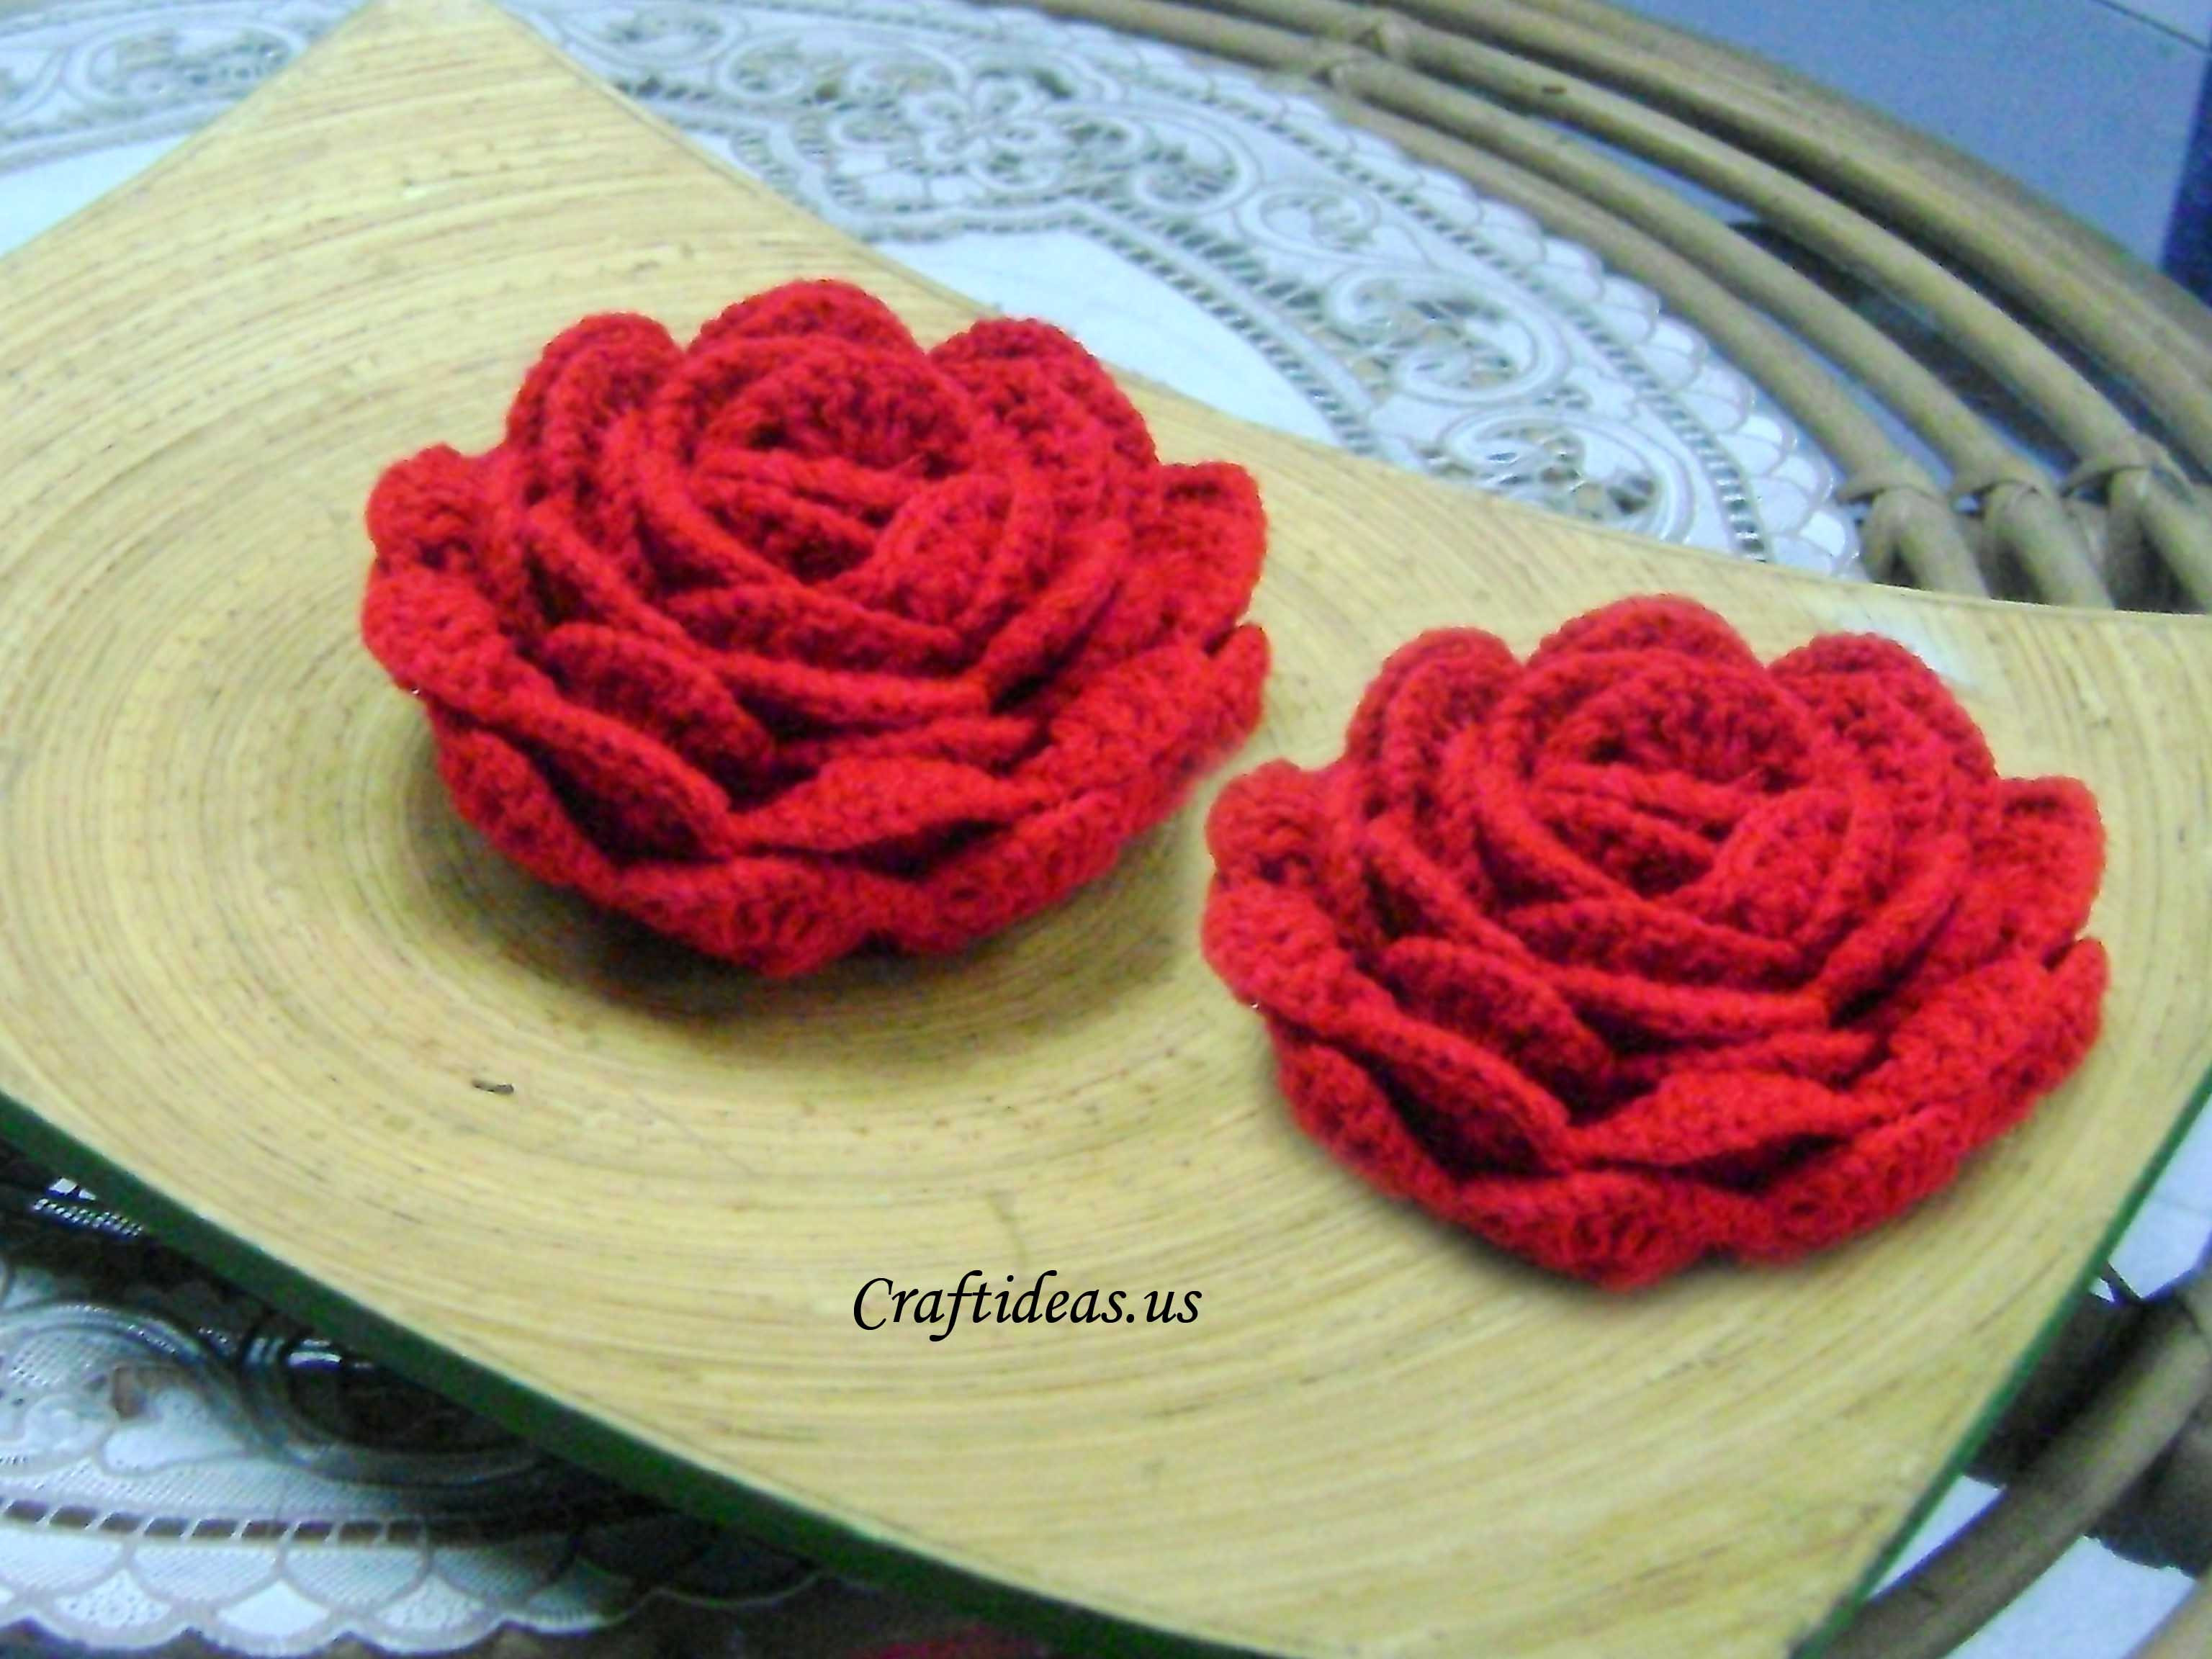 Crochet Tutorial Luxury Crochet Flower Tutorial Craft Ideas Of Wonderful 48 Ideas Crochet Tutorial